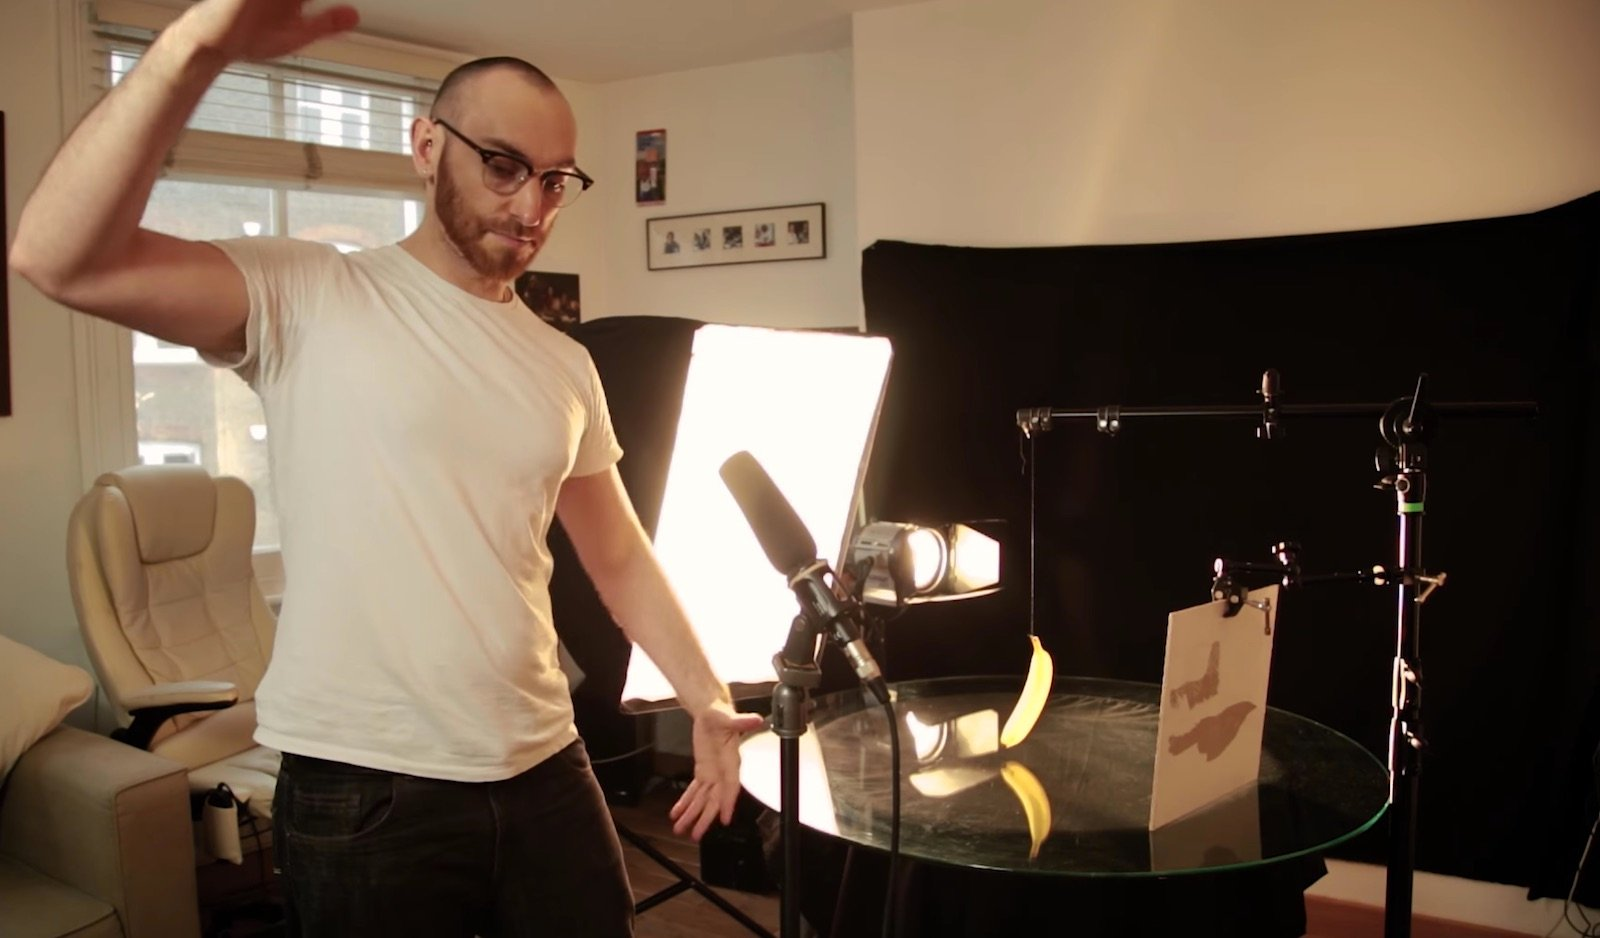 Lighting Tips: How to Shoot Killer Product Photography at Home